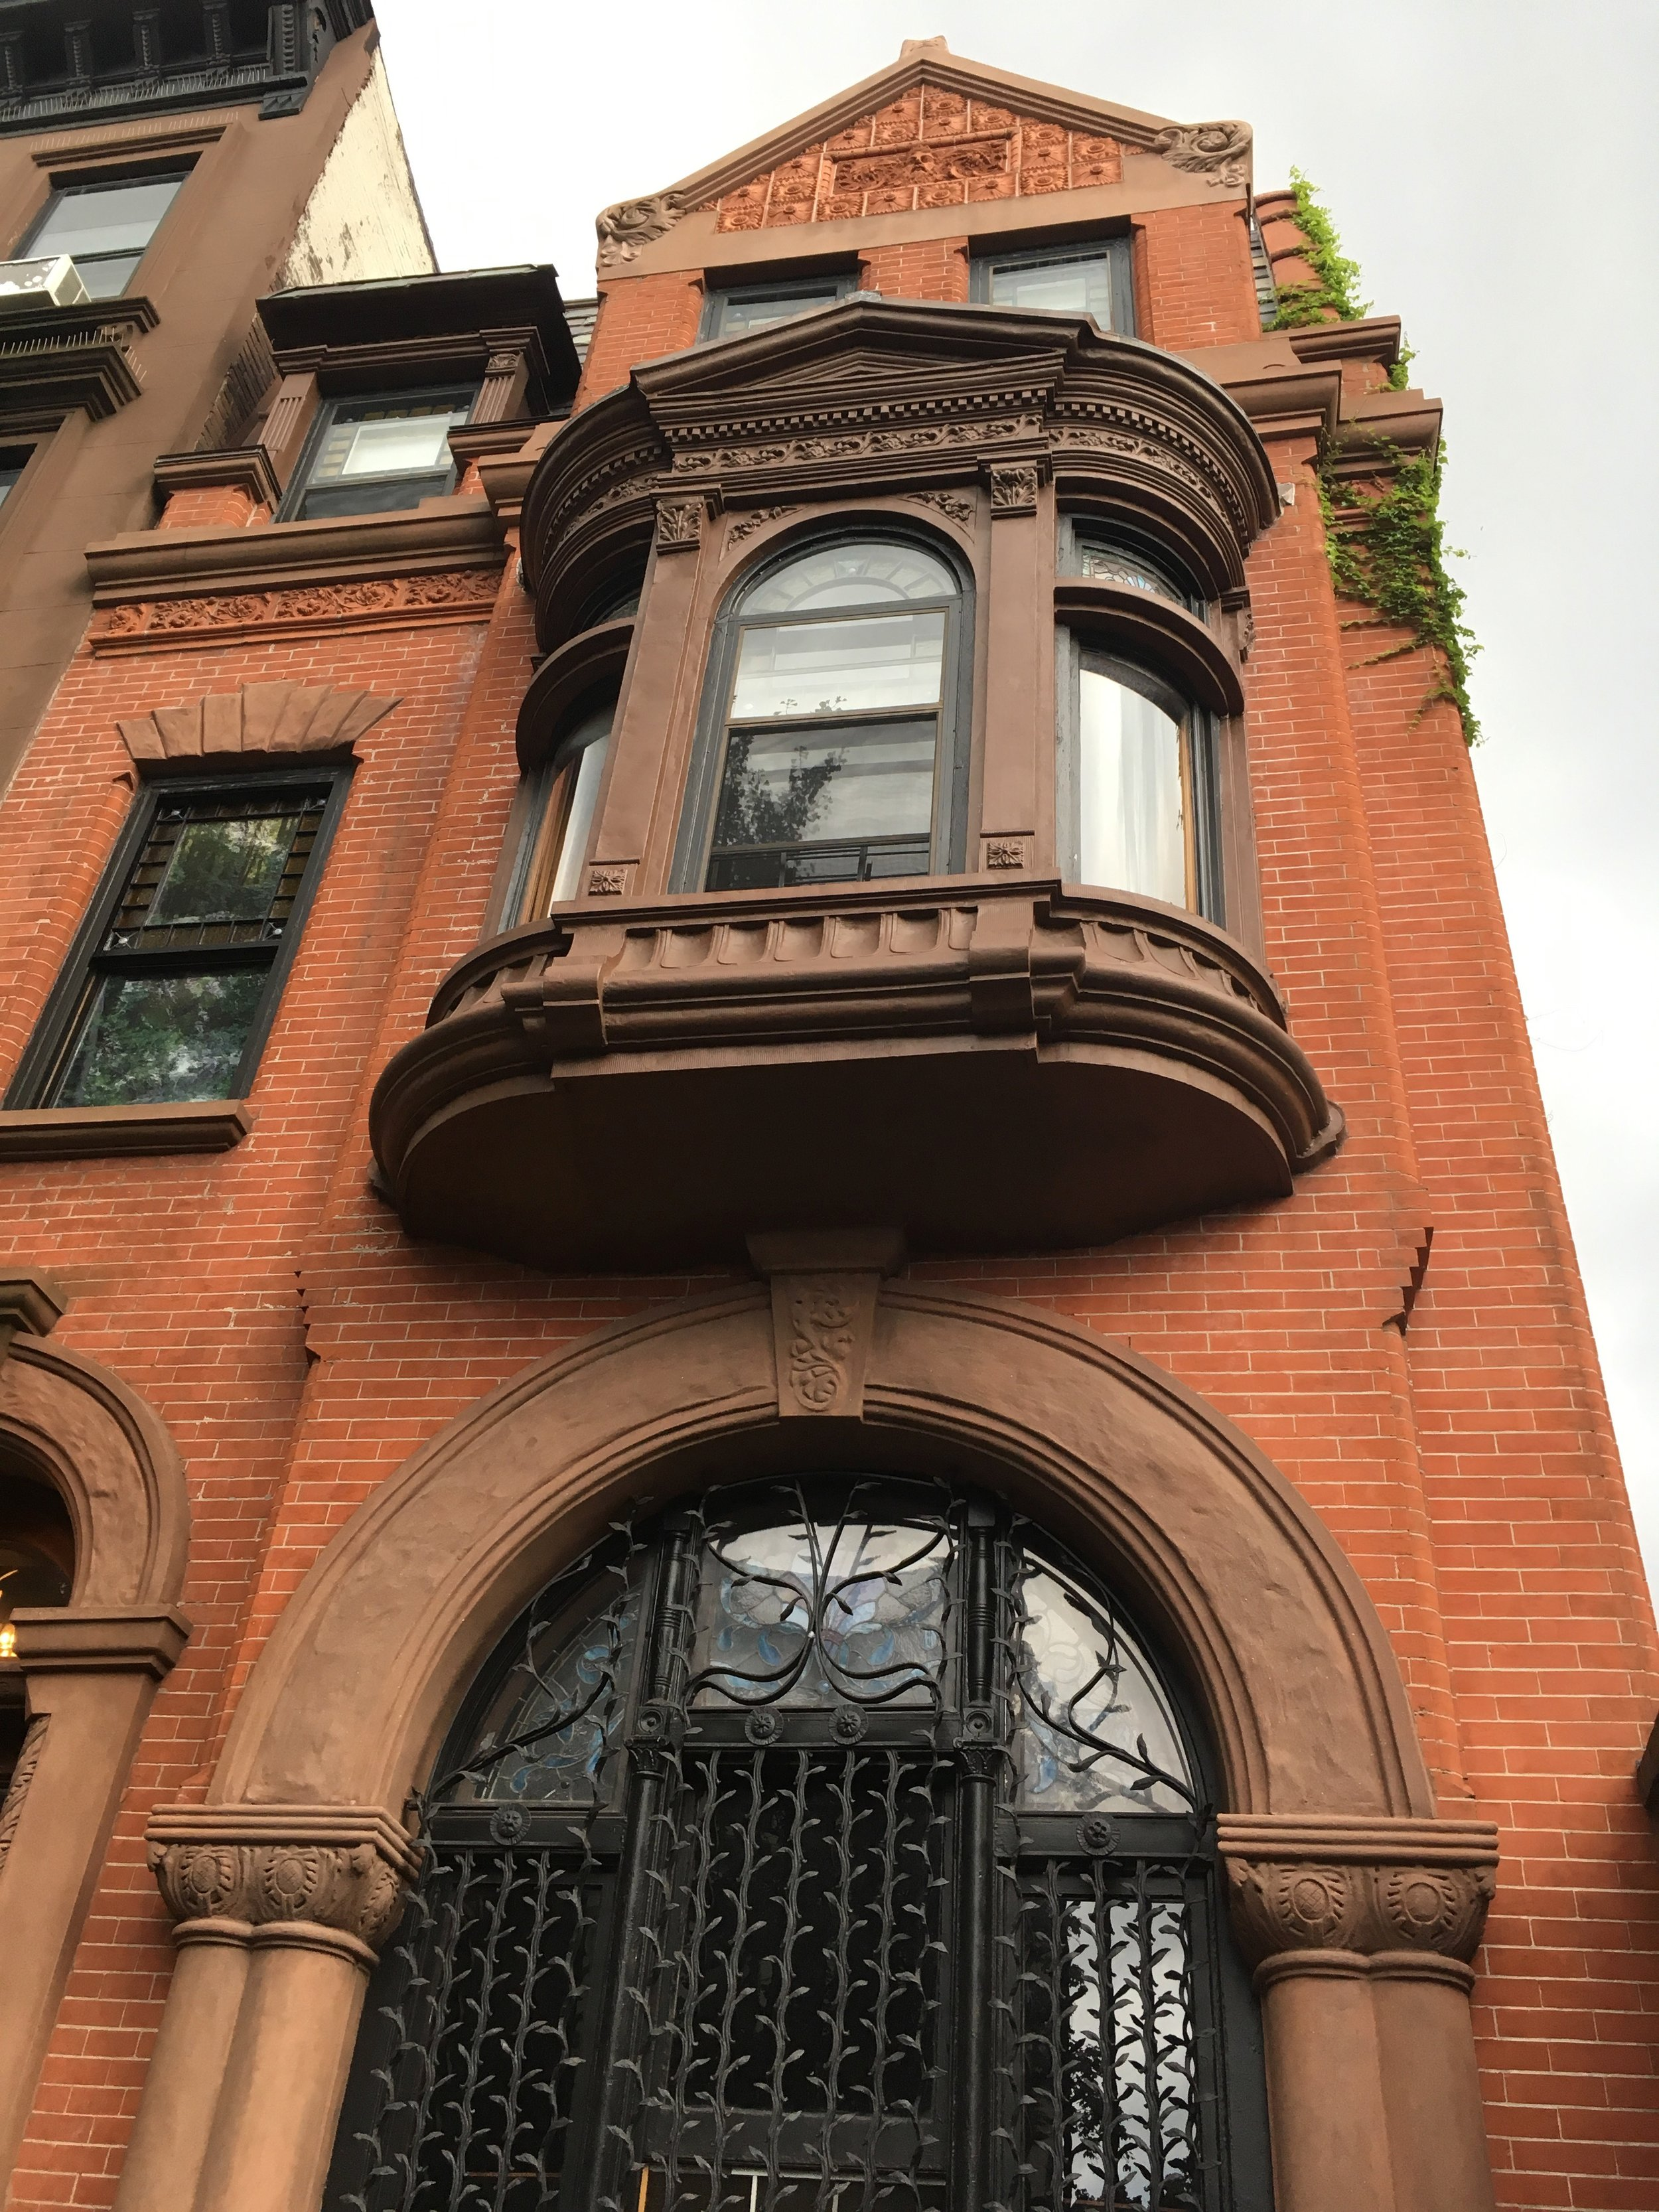 and Park Slope cupolas...